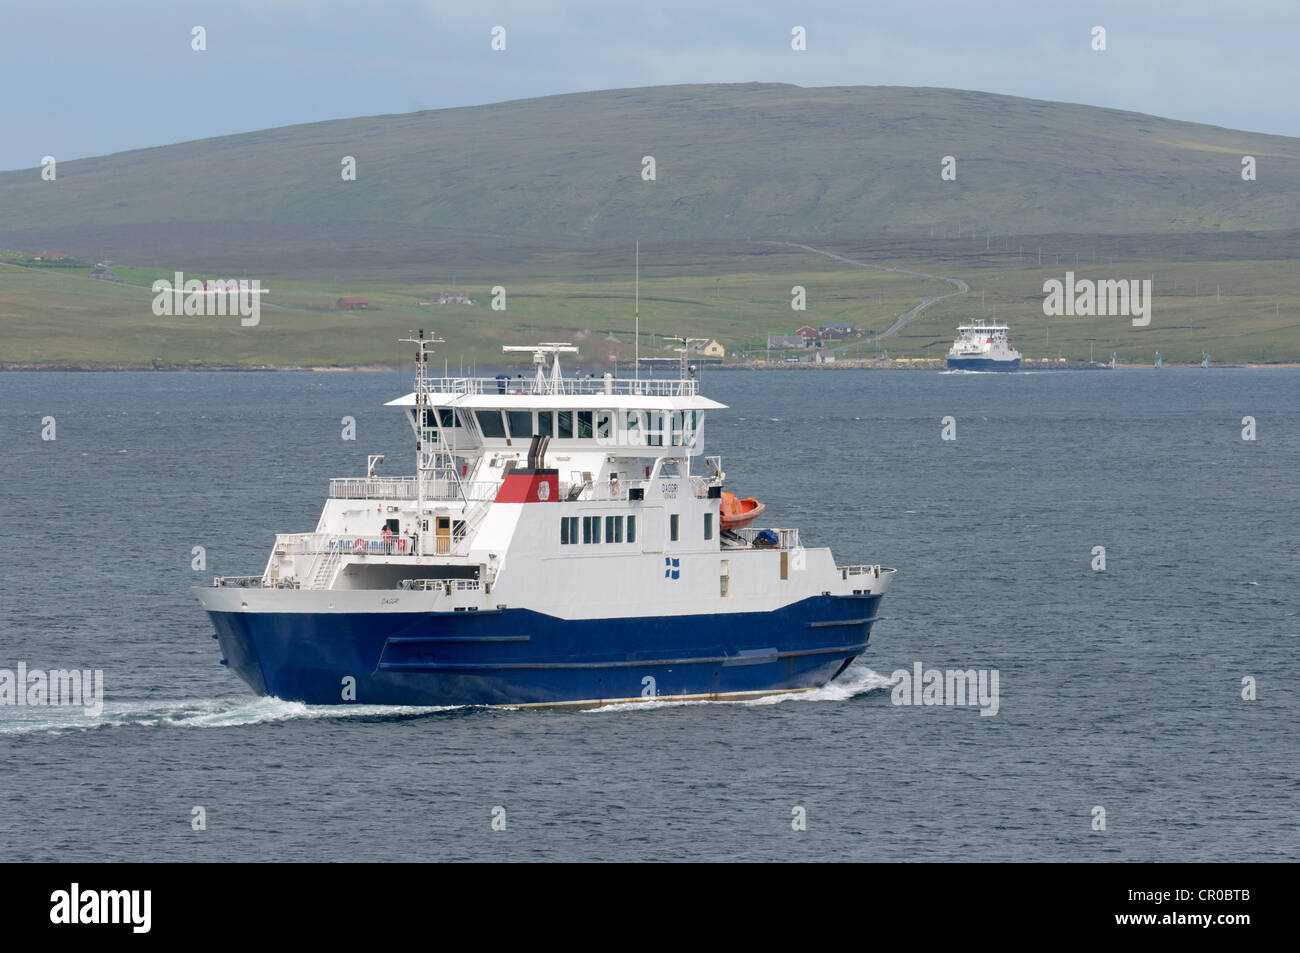 Ferries crossing Yell Sound in the Shetland Isles. Ferry 'Daggri' in foreground. Village of Ulsta and isle - Stock Image